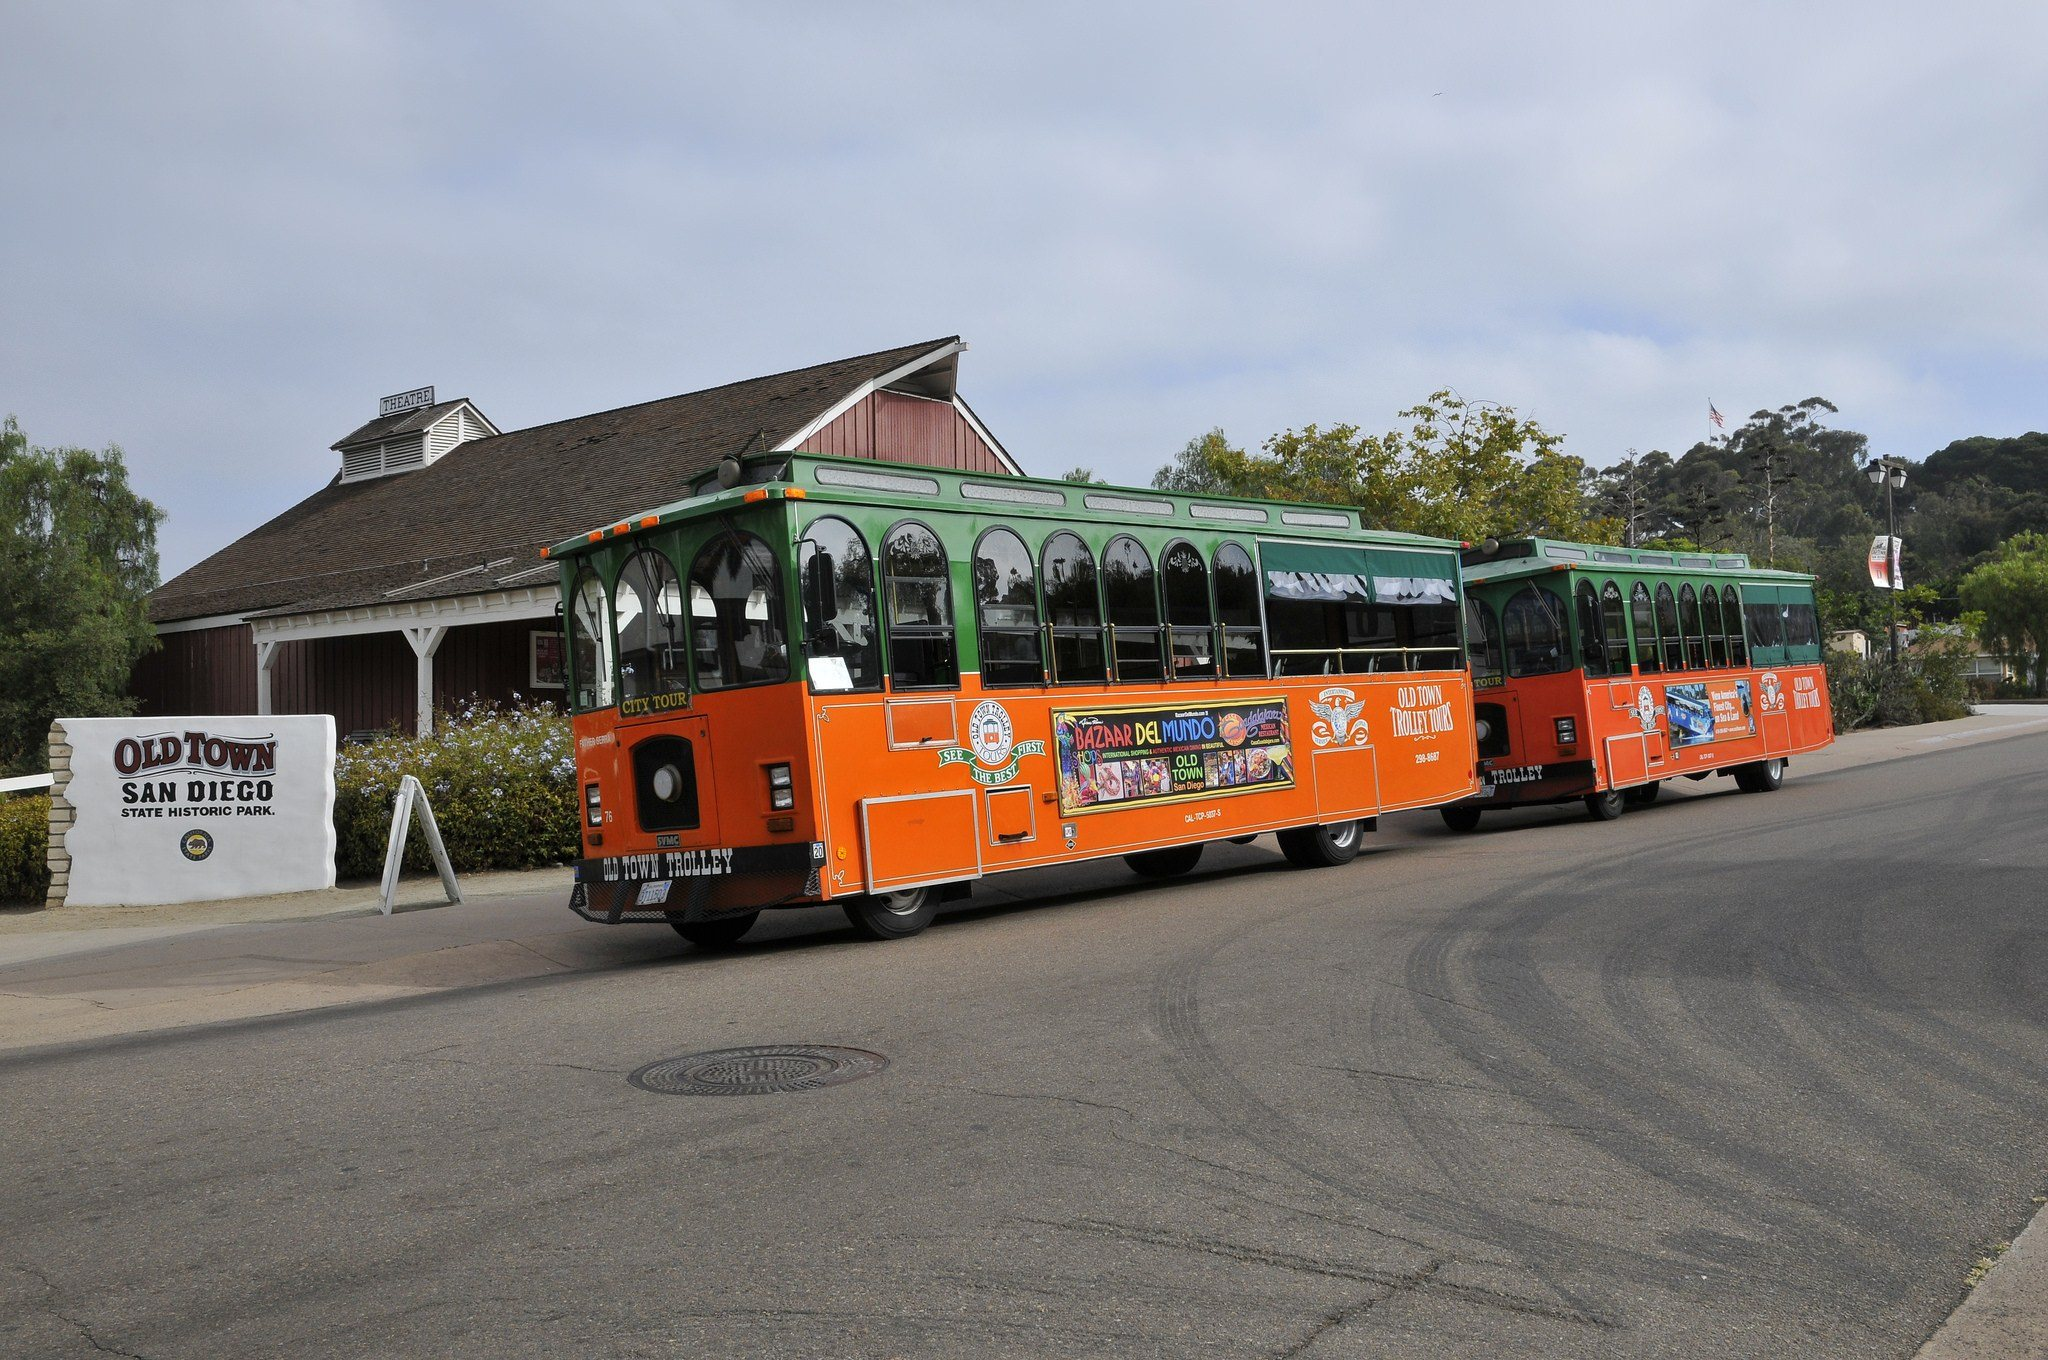 Old Town Trolley Tours in San Diego offer a hop-on and hop-off trolley experience.